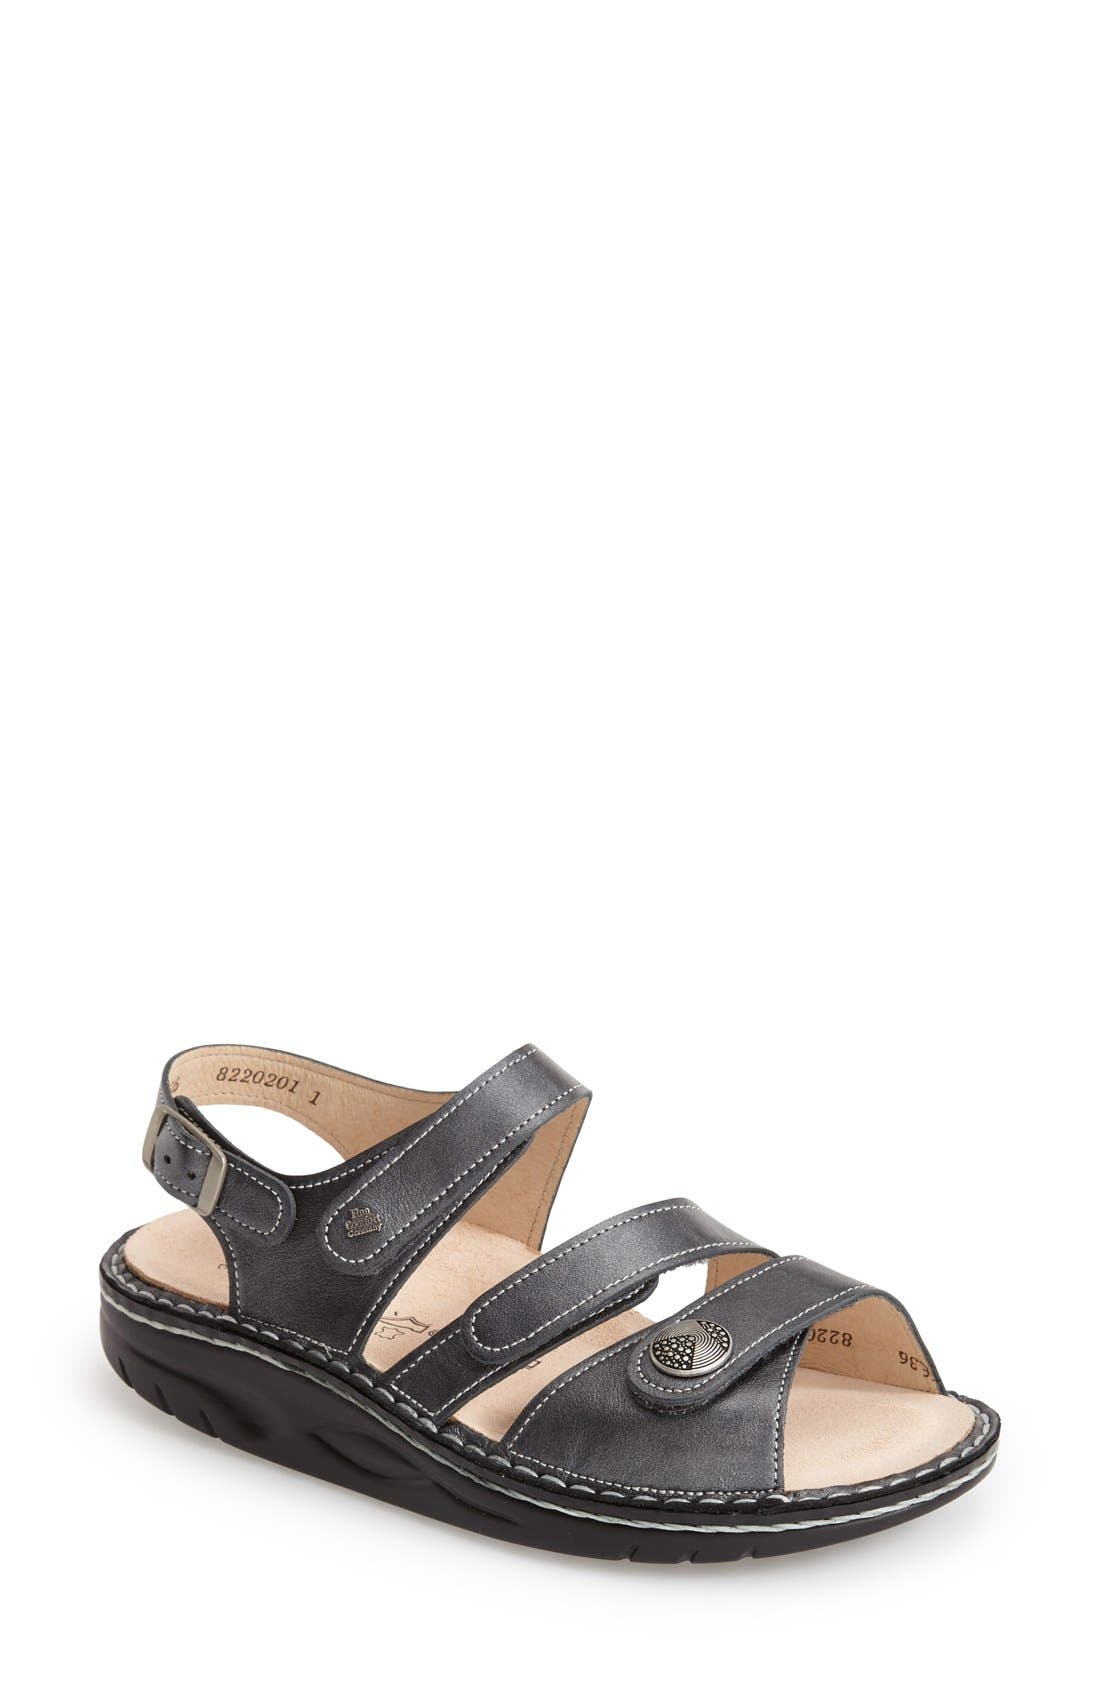 Alternate Image 1 Selected - Finn Comfort 'Tiberias' Leather Sandal (Women)